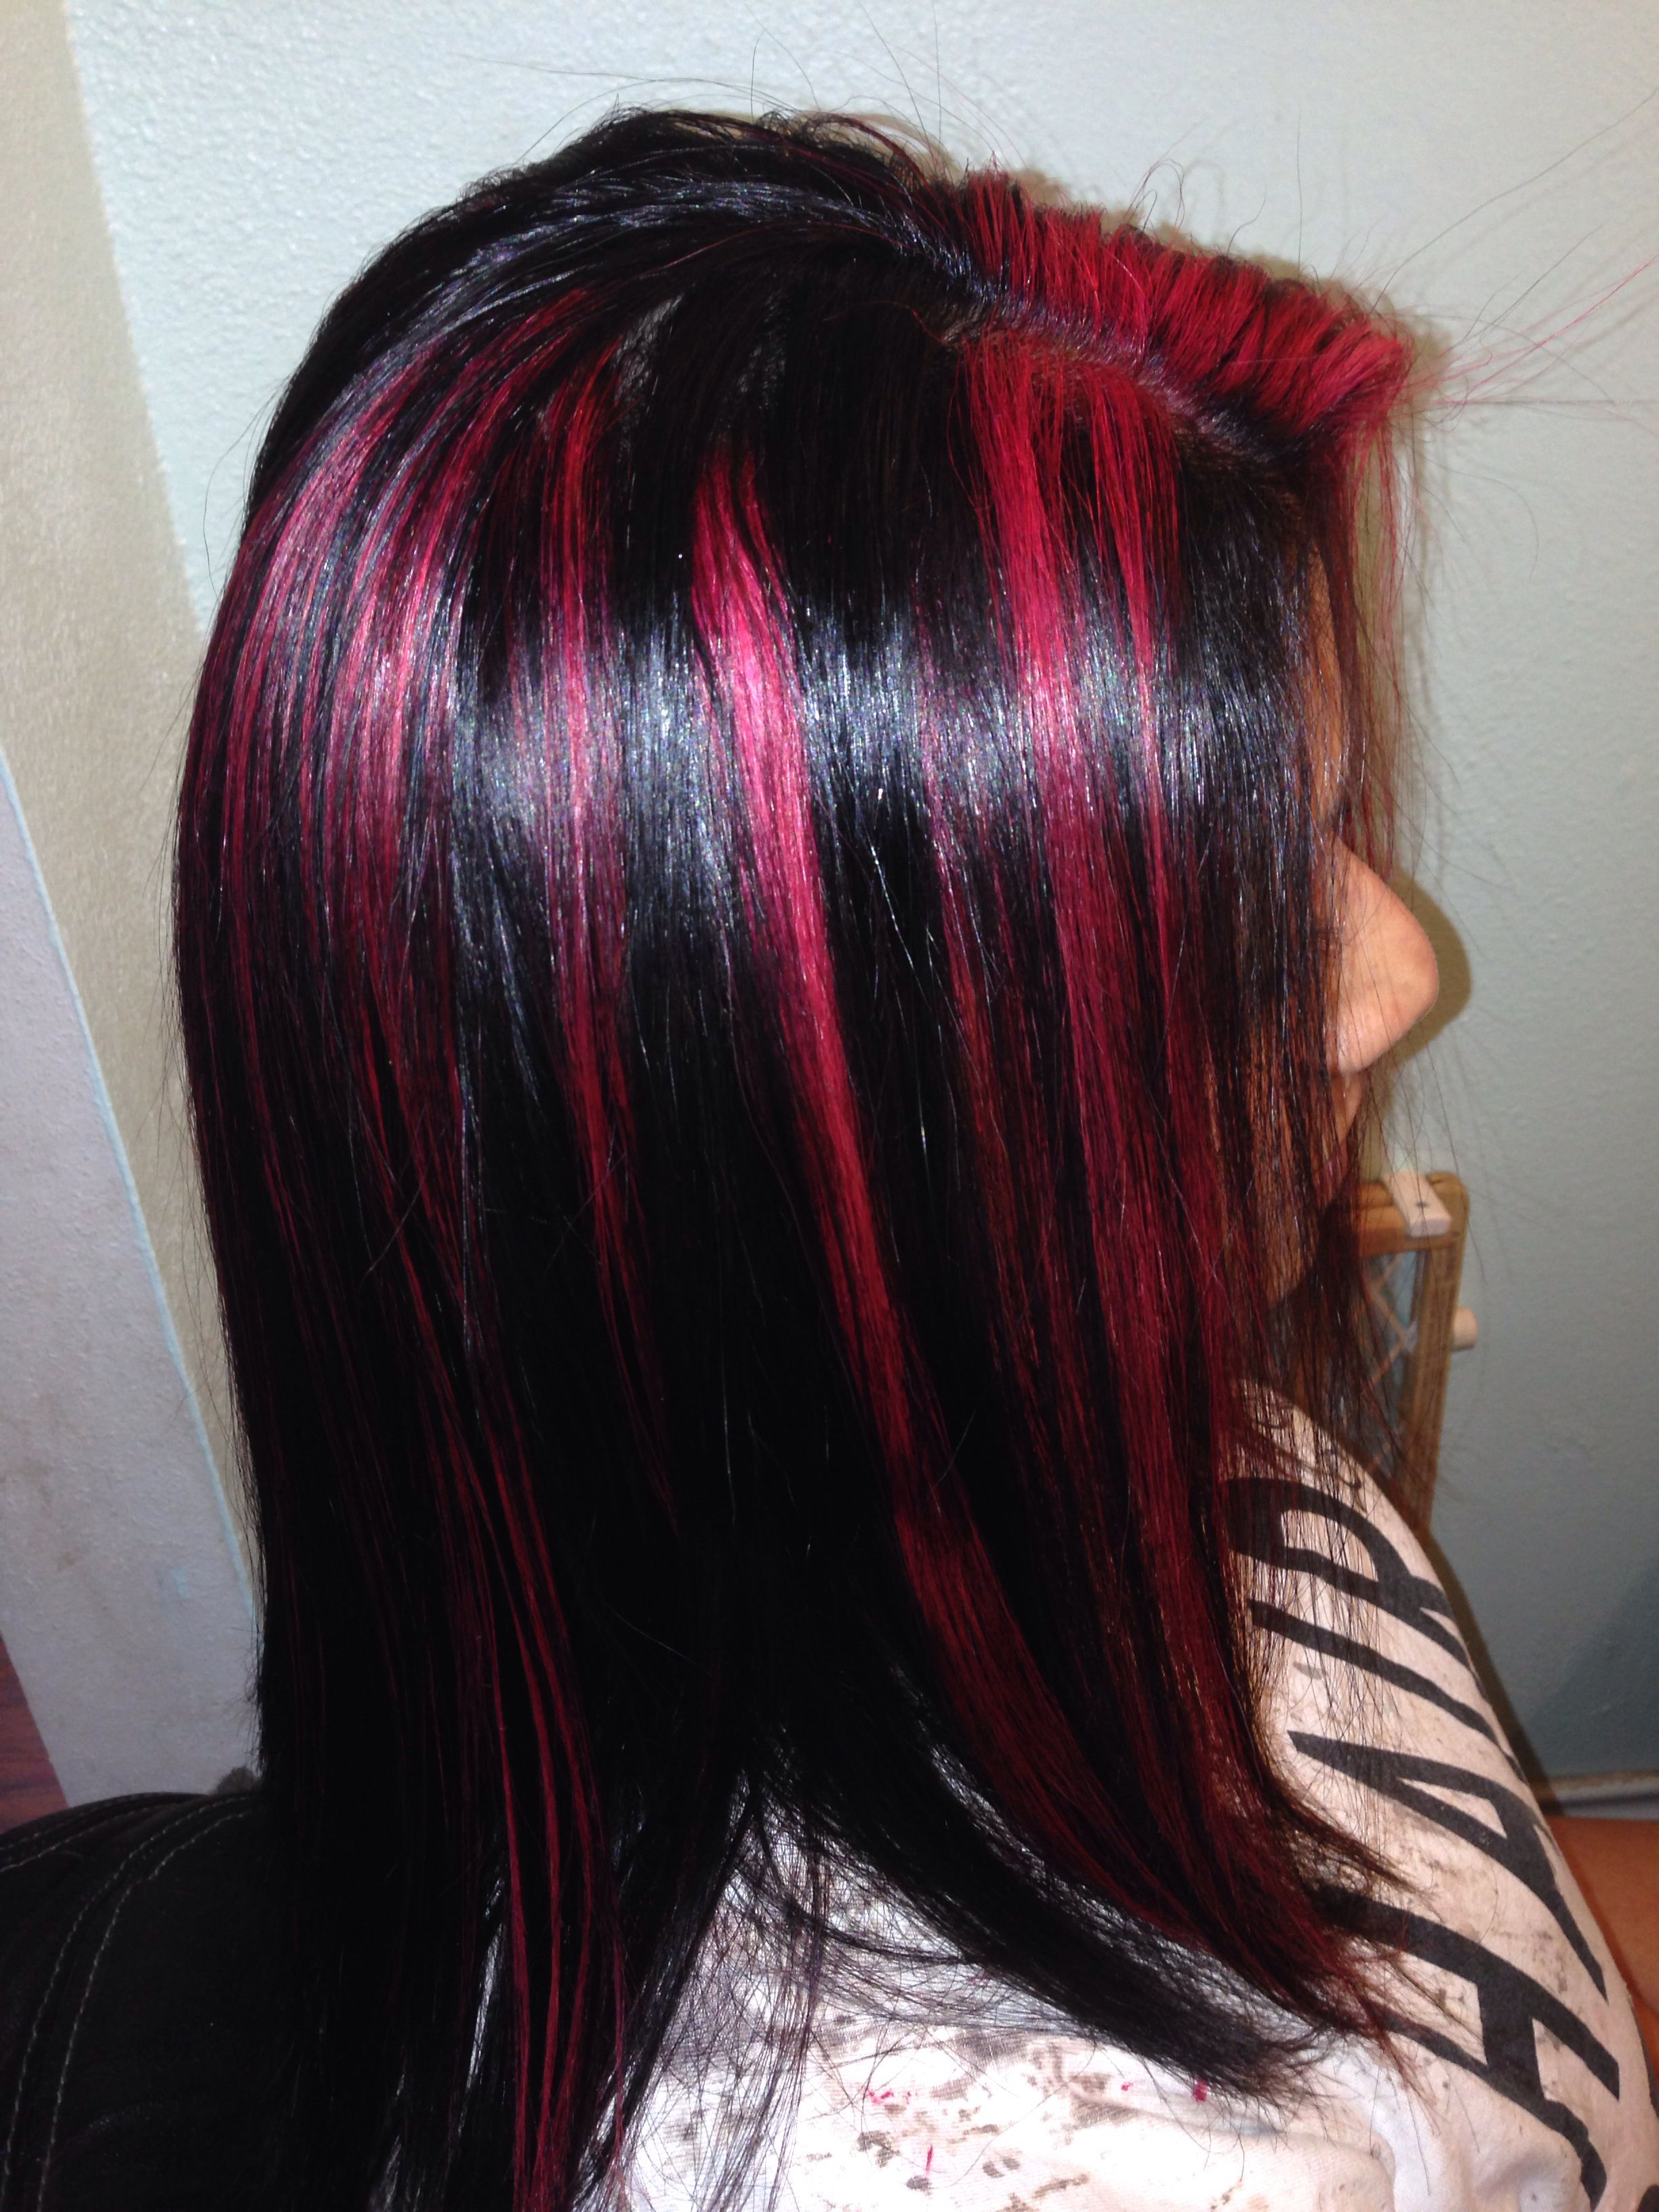 Black With Red Violet Highlights Matrix Sored Socolor In Rv Hair